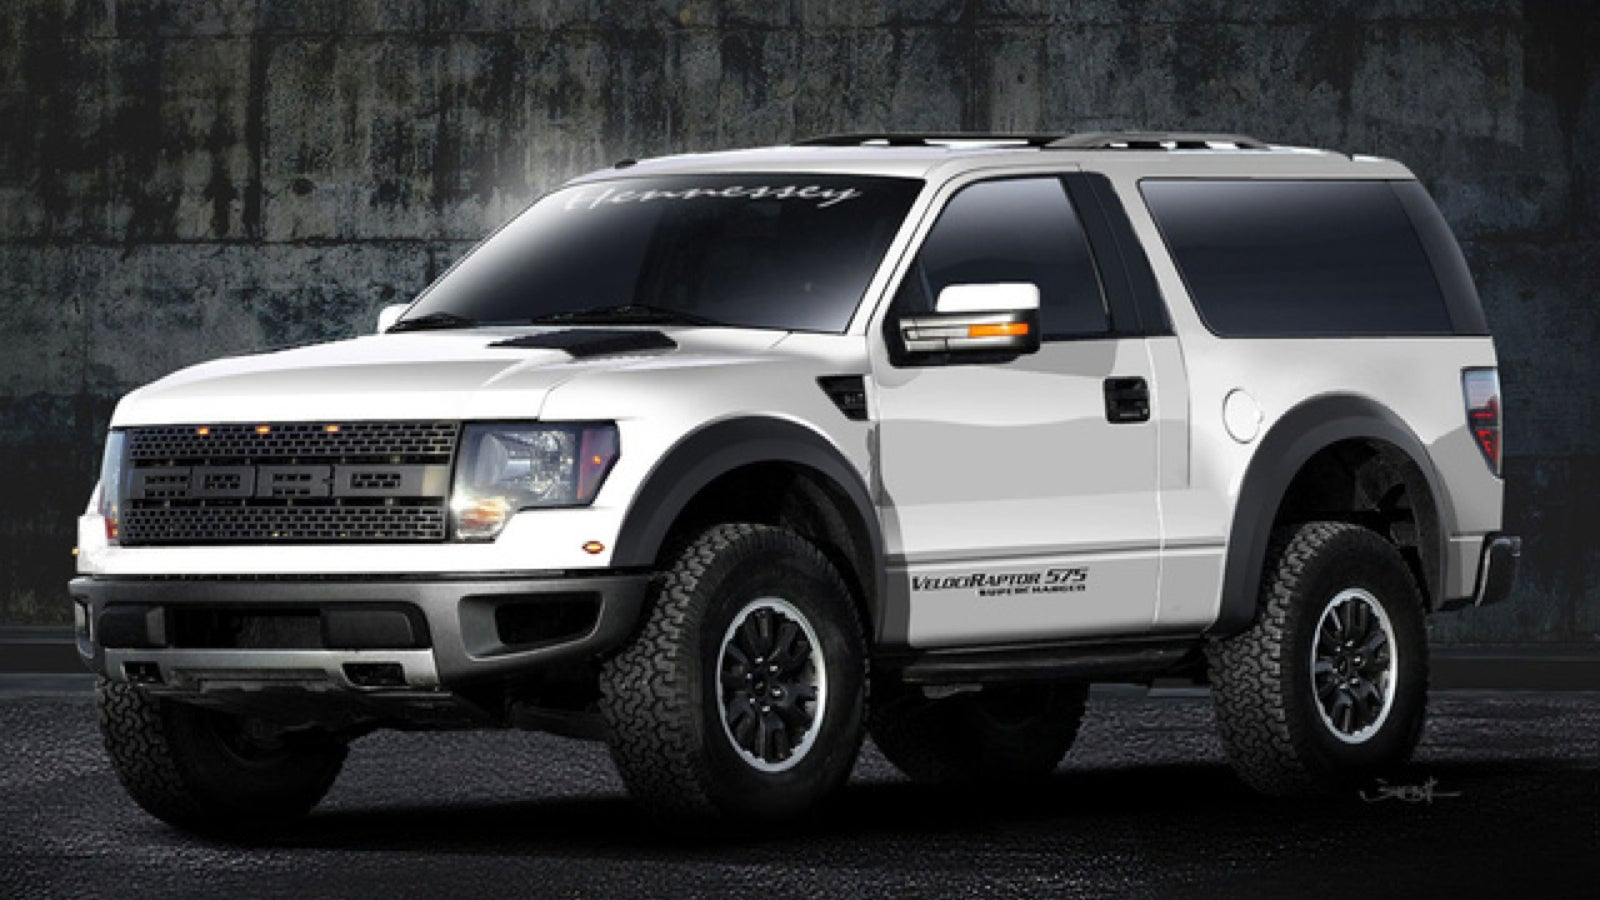 We asked what you reckoned a 2015 Ford Bronco should look like and got some great submissions. MontegoMan562u0027s design was far and away the most recommended ... & These Are The 2015 Ford Broncos Jalopnik Readers Want markmcfarlin.com